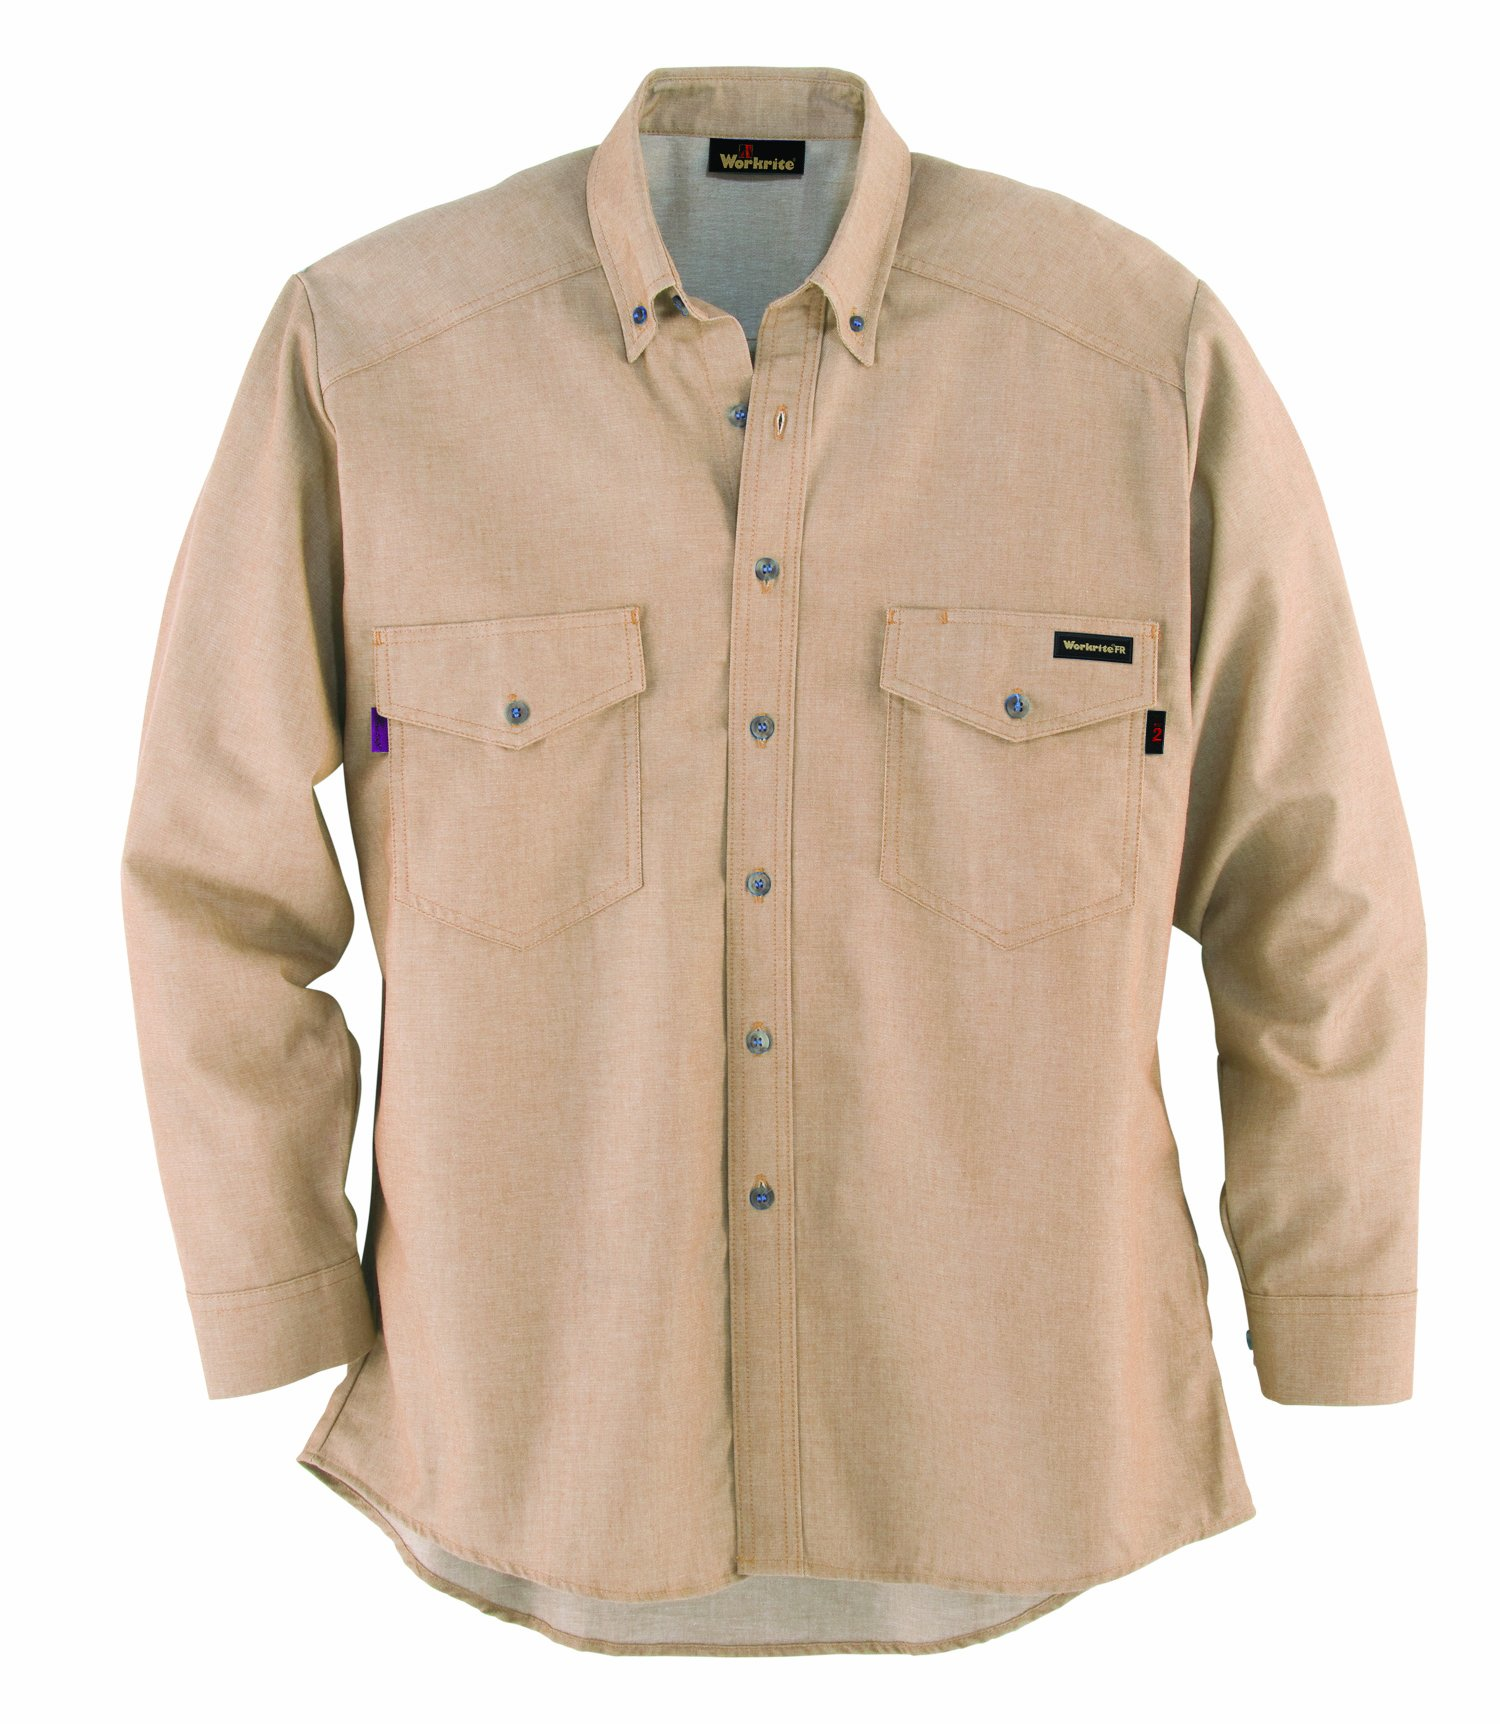 Workrite 288UT70KHLG-0L Flame Resistant 7 oz UltraSoft Long Sleeve Utility Shirt, Button Cuff, Large, Long Length, Khaki by Workrite (Image #1)